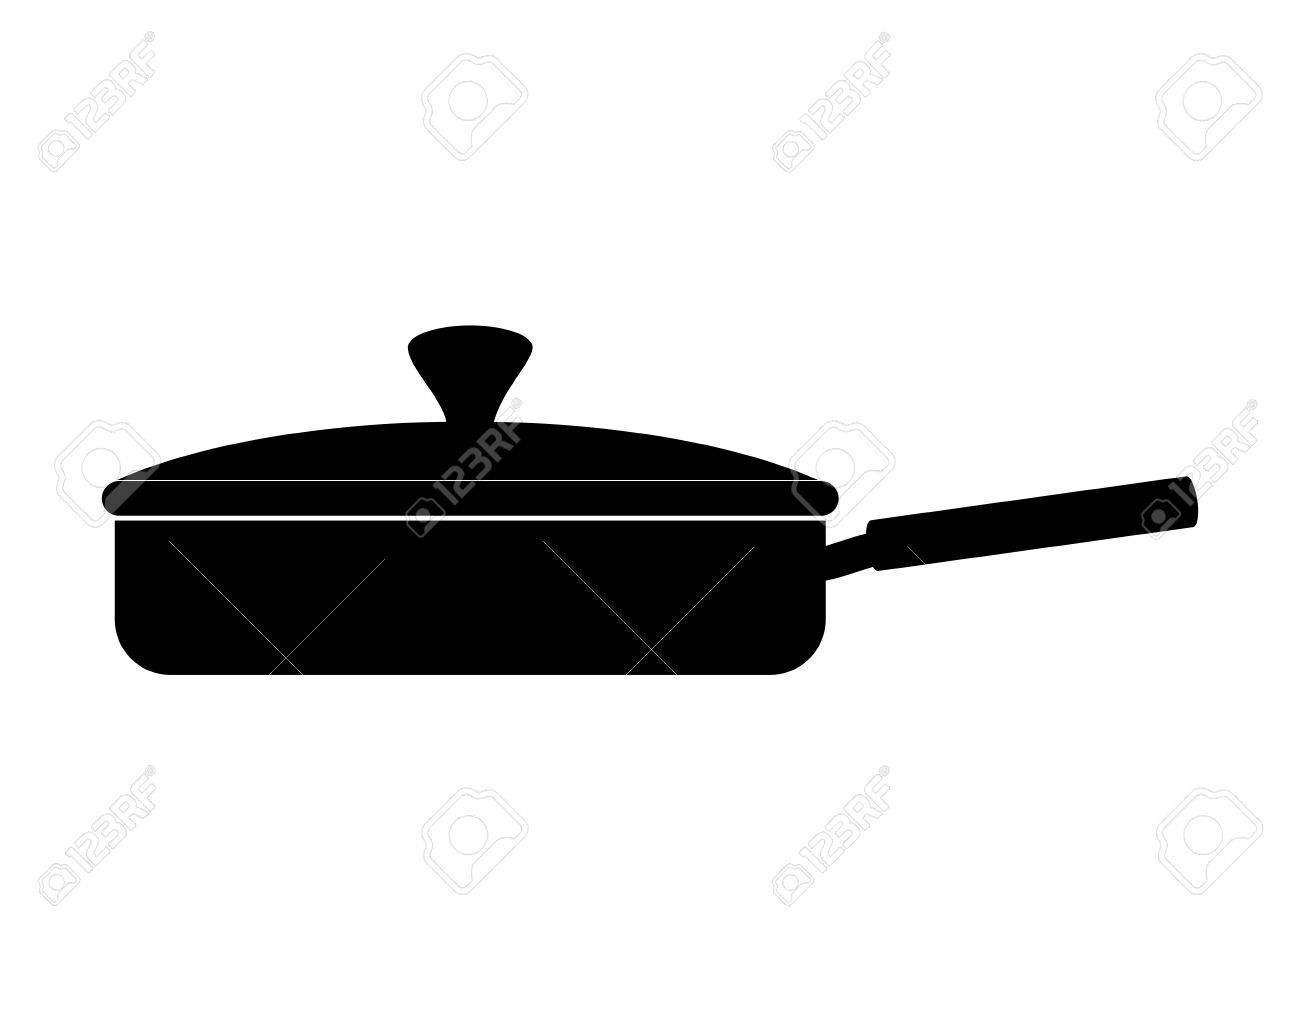 Best Of Cooking Utensil Clipart Black and White